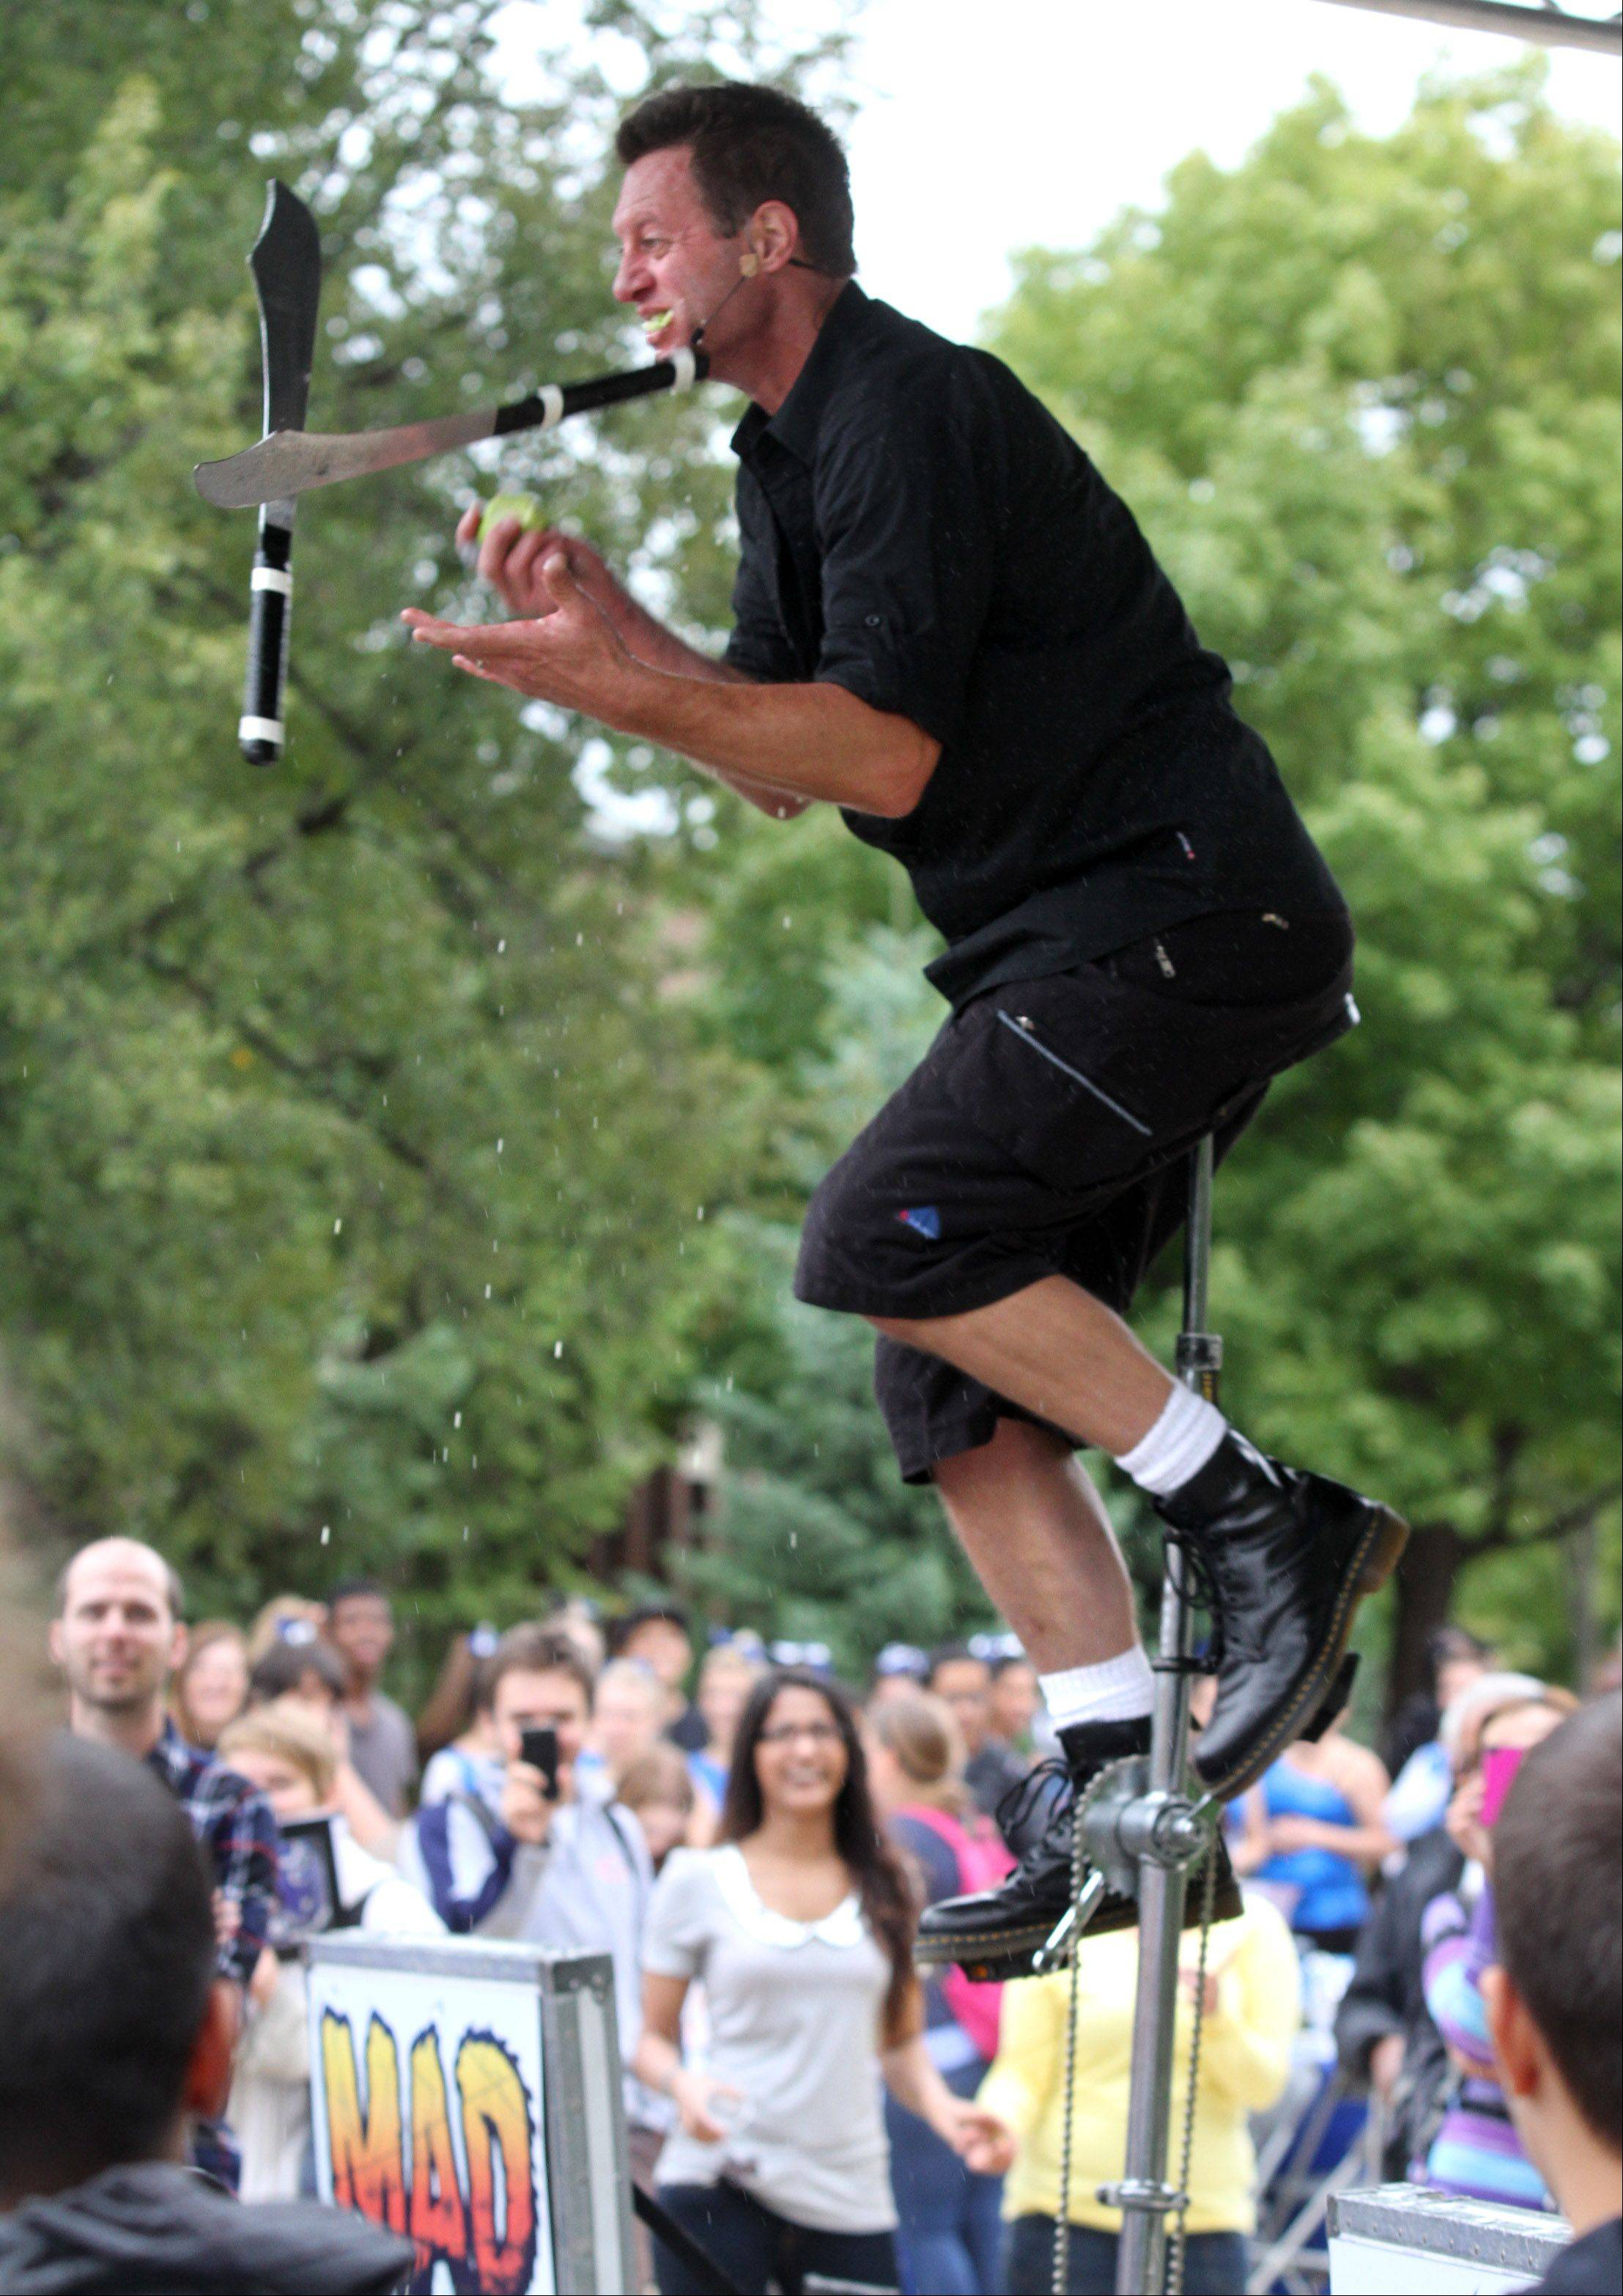 Mad Chad Taylor riding a unicycle juggles two-knifes and an apple while taking bites of the apples as he performs a 30-minute comedy juggling show during Harper College's Hullabaloo.